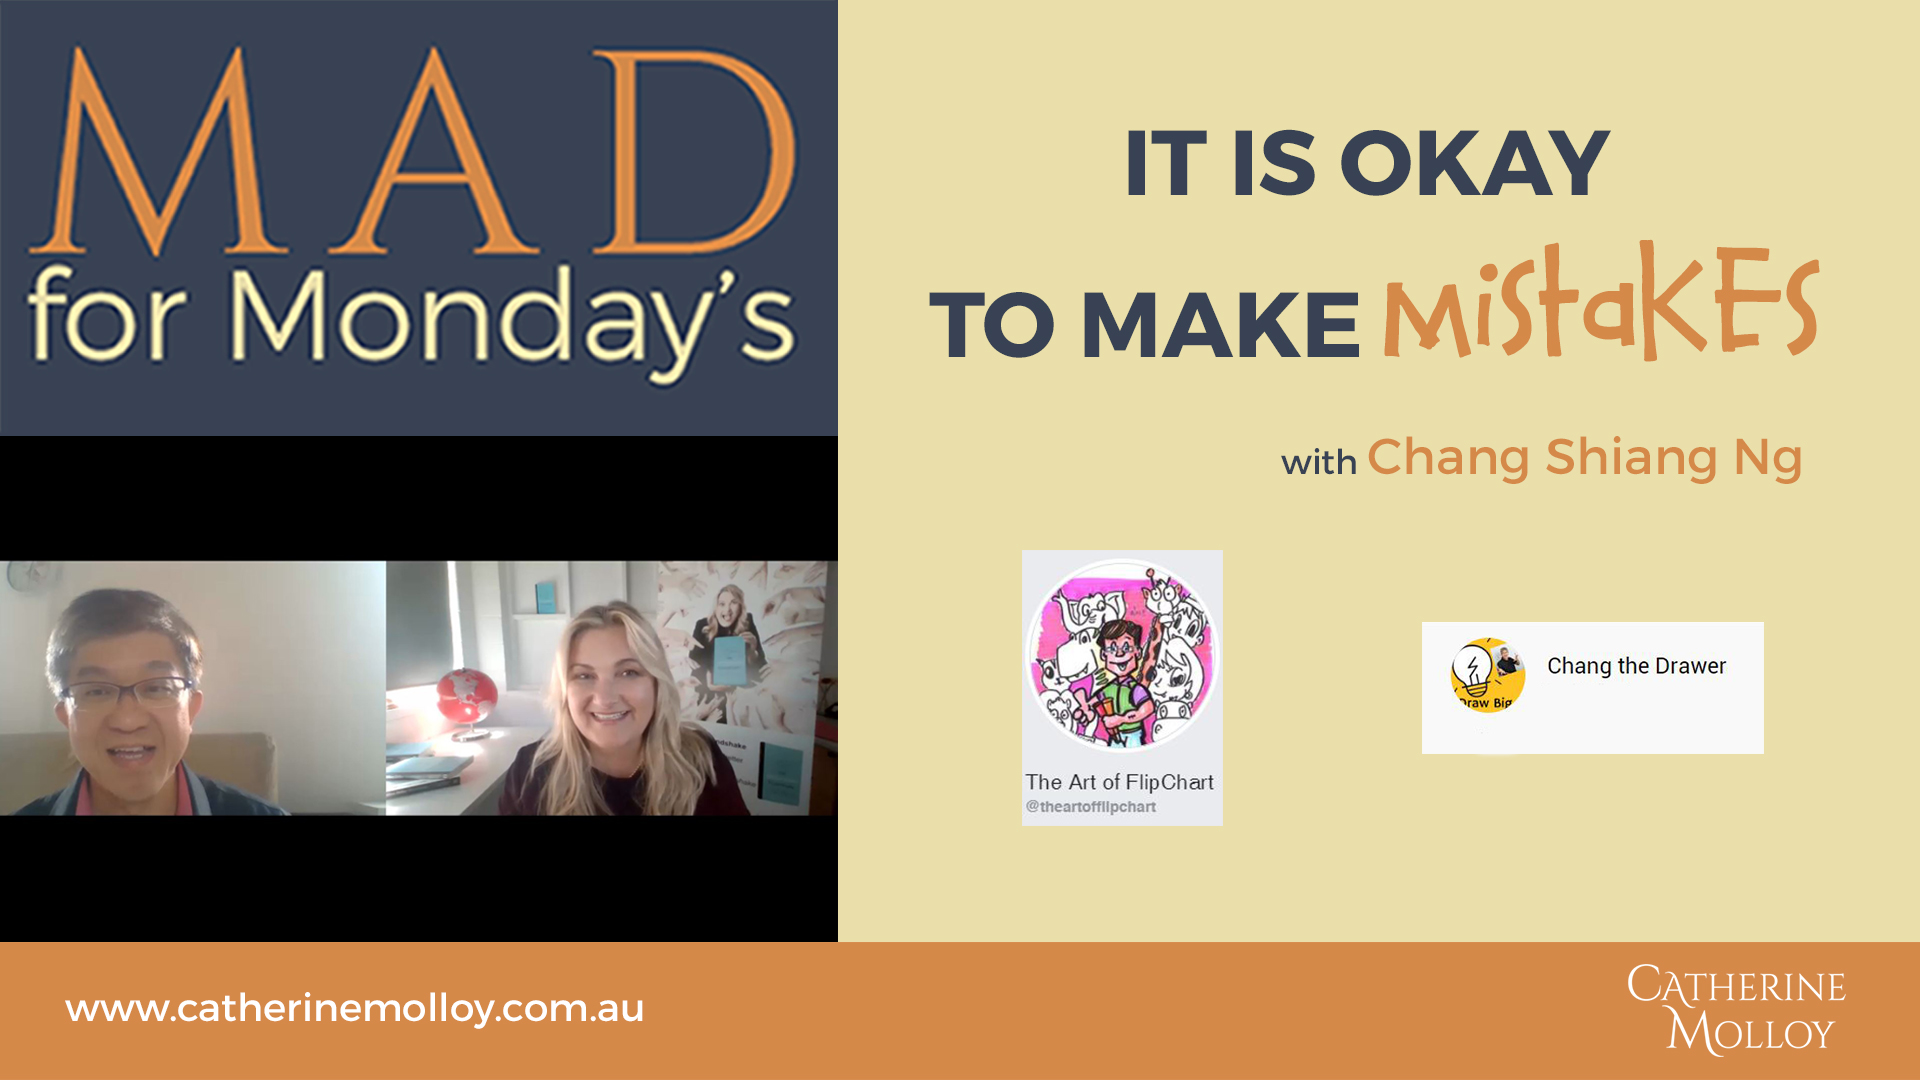 MAD for Monday's – It is Okay to Make Mistakes